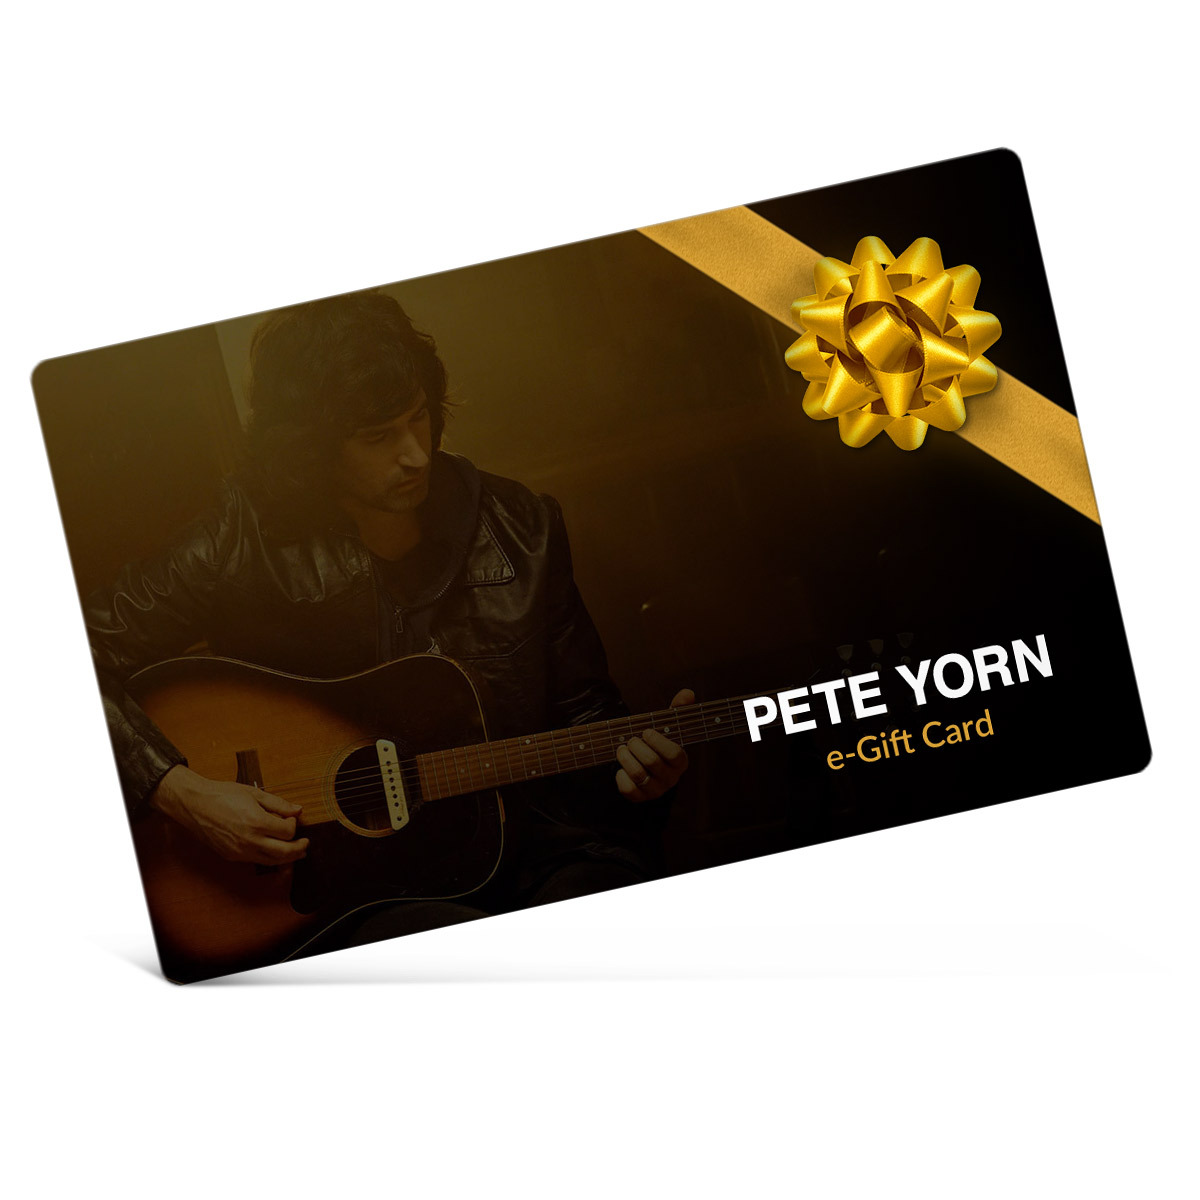 Pete Yorn Electronic Gift Certificate